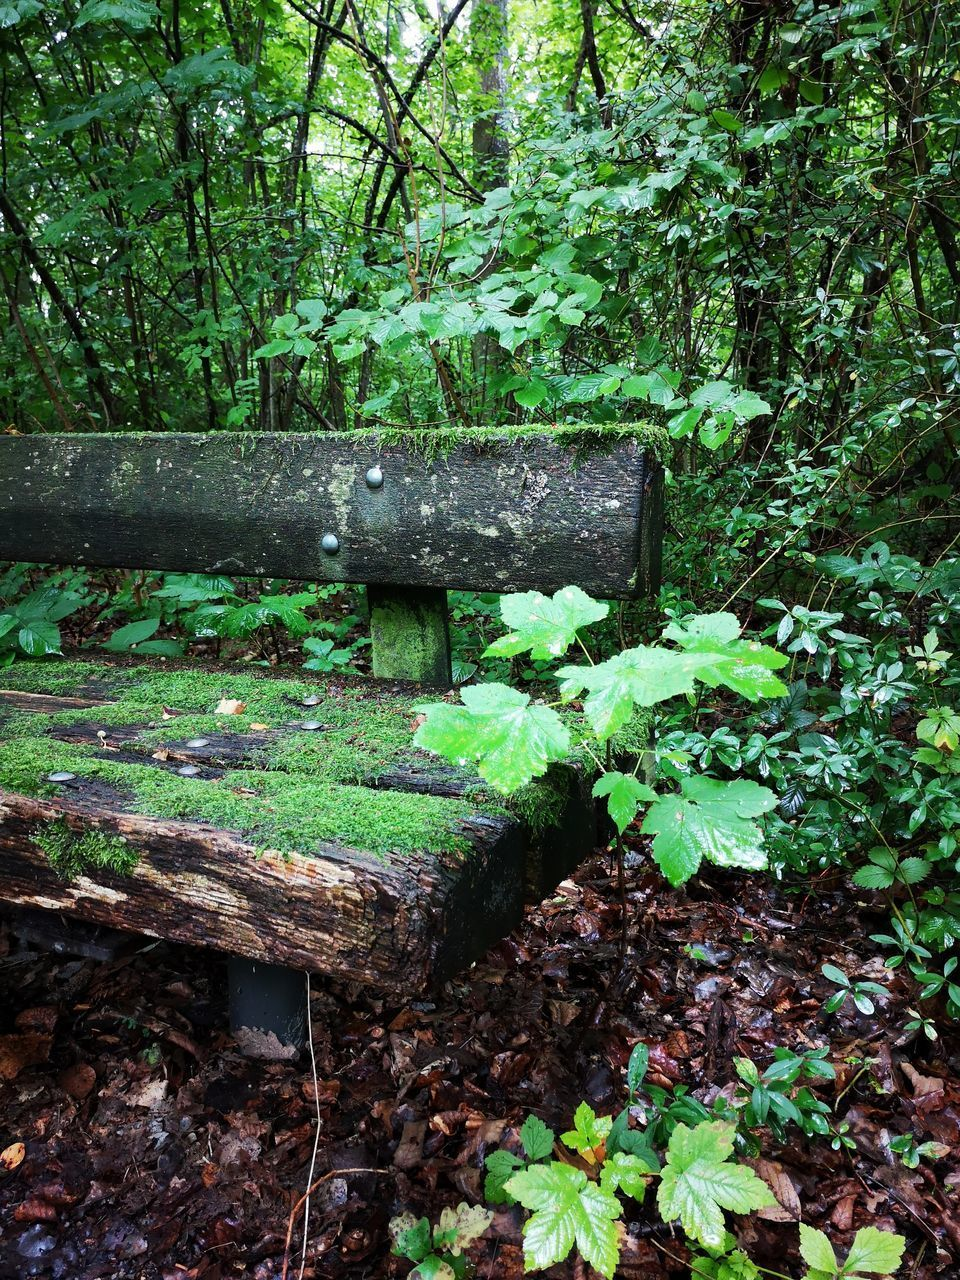 VIEW OF BENCH IN FOREST